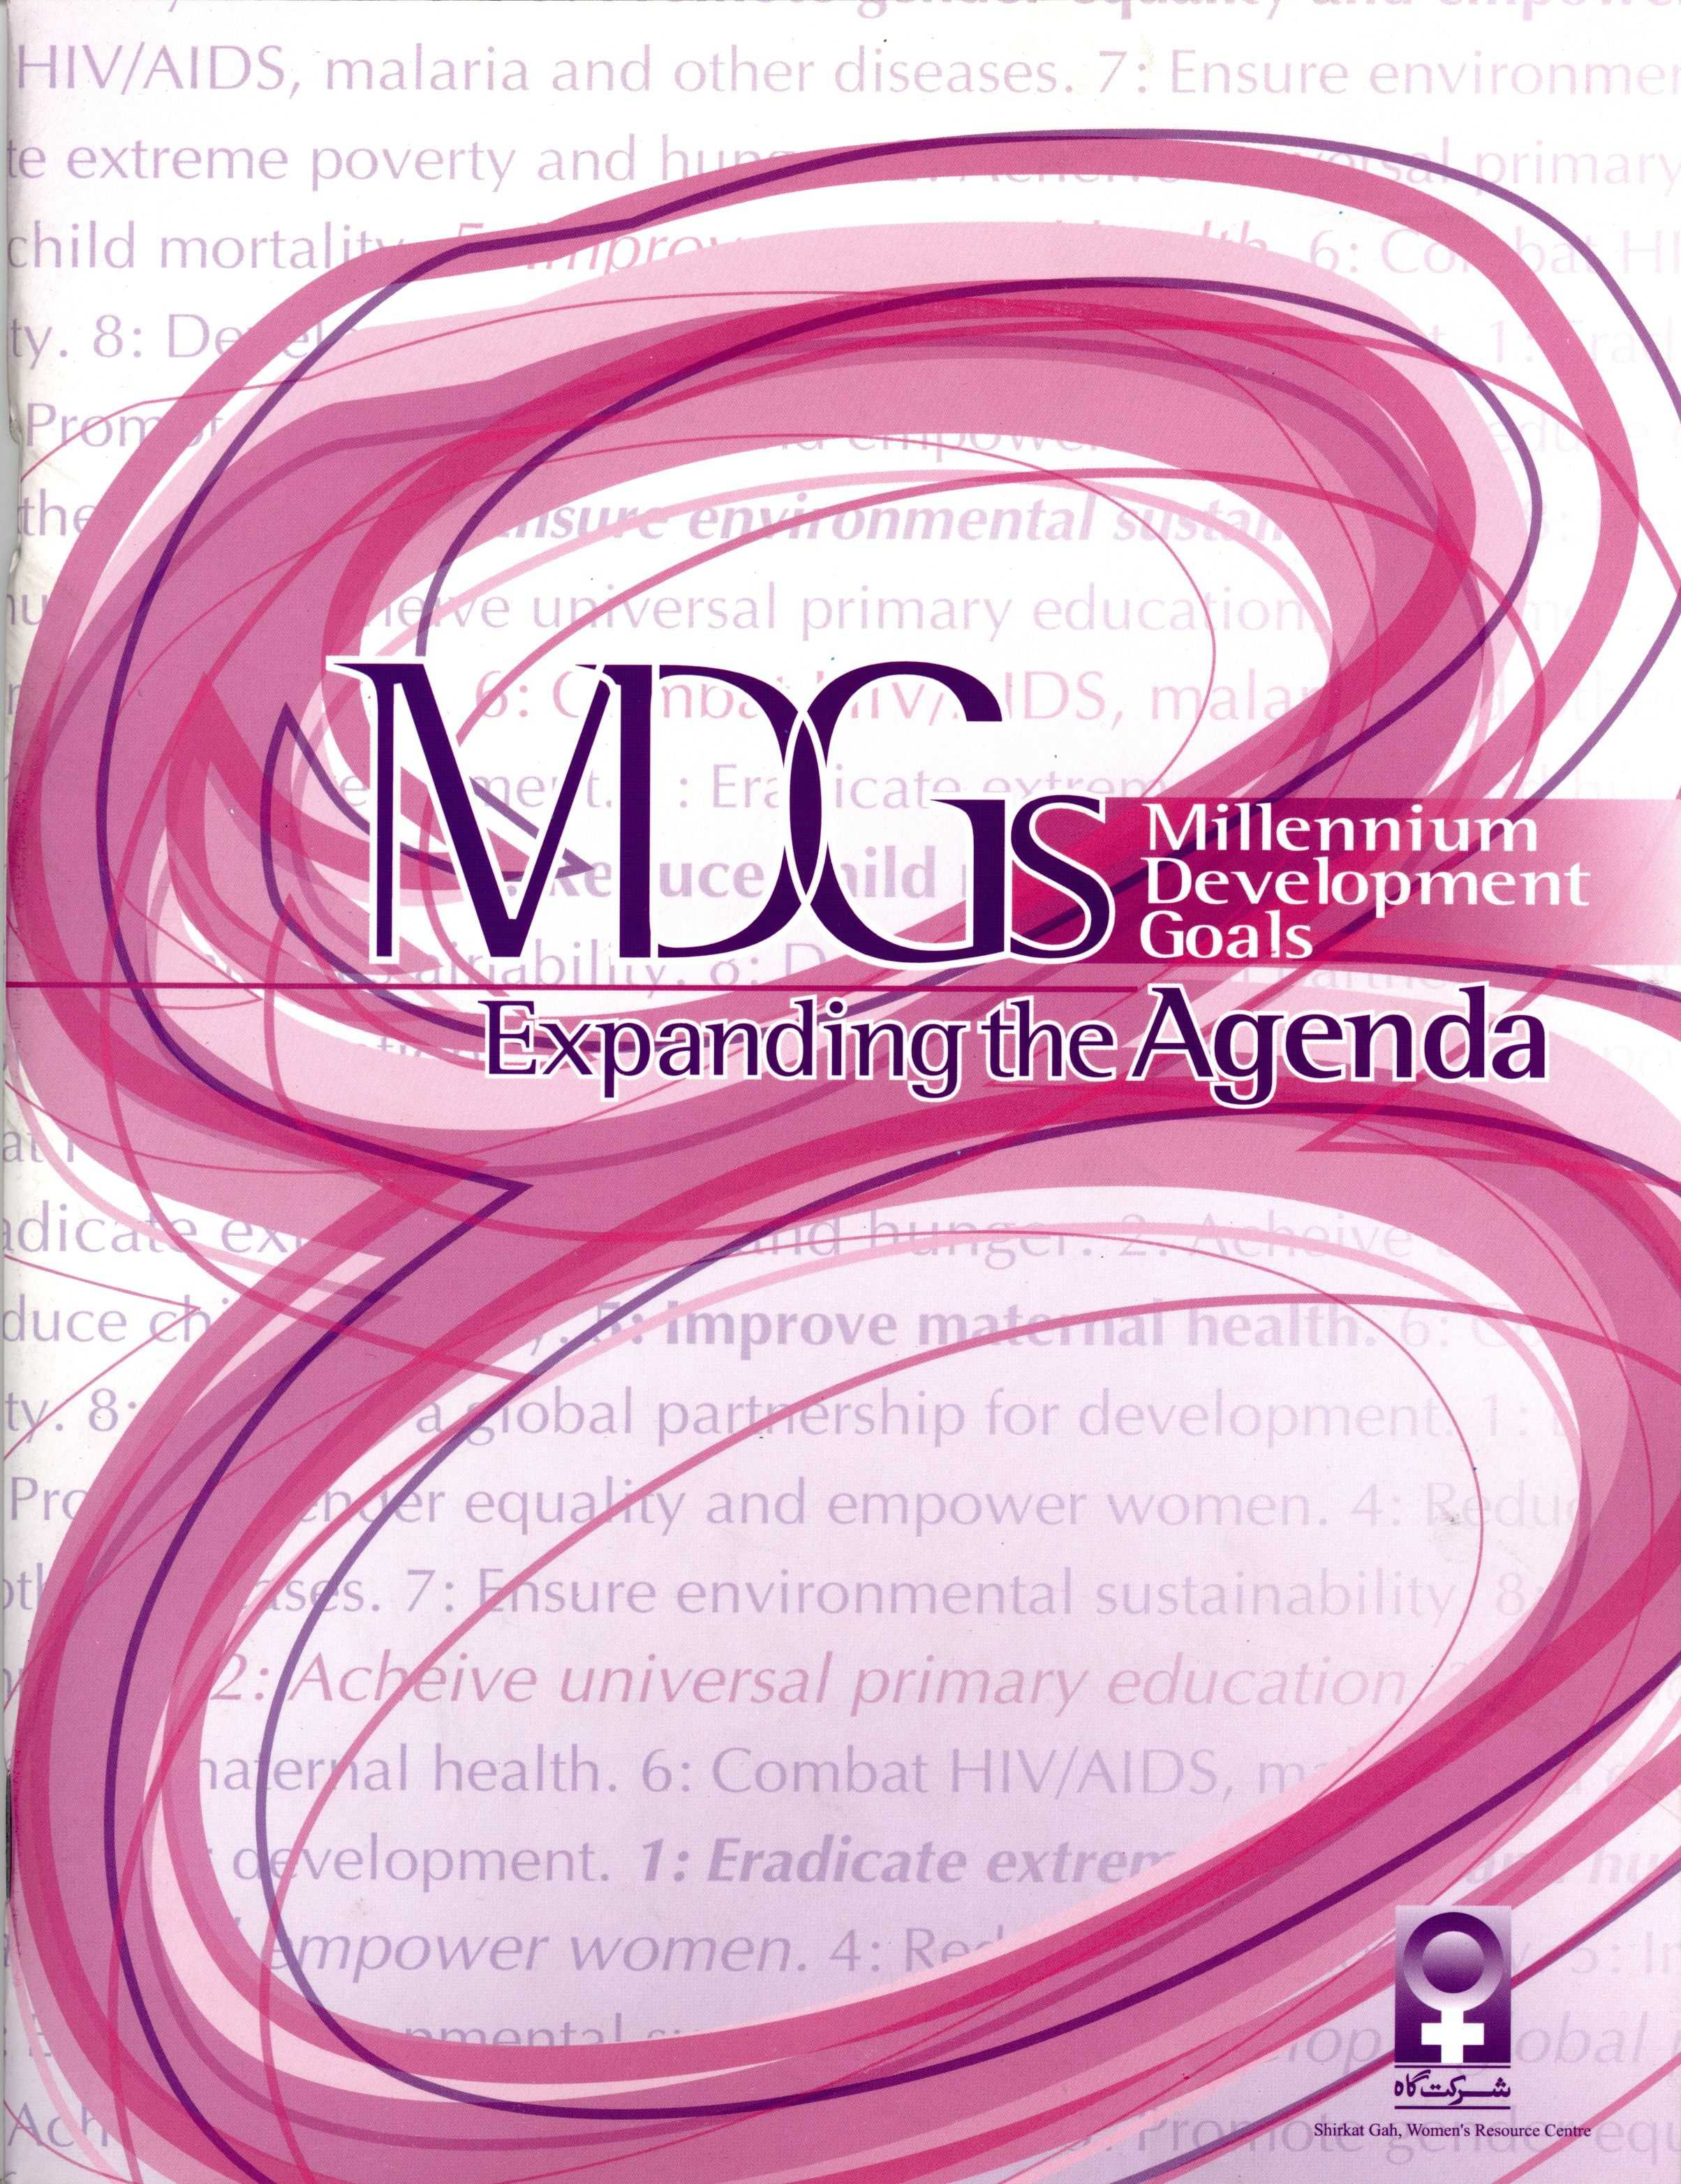 MDGs (Millennium Development Goals) Expanding The Agenda